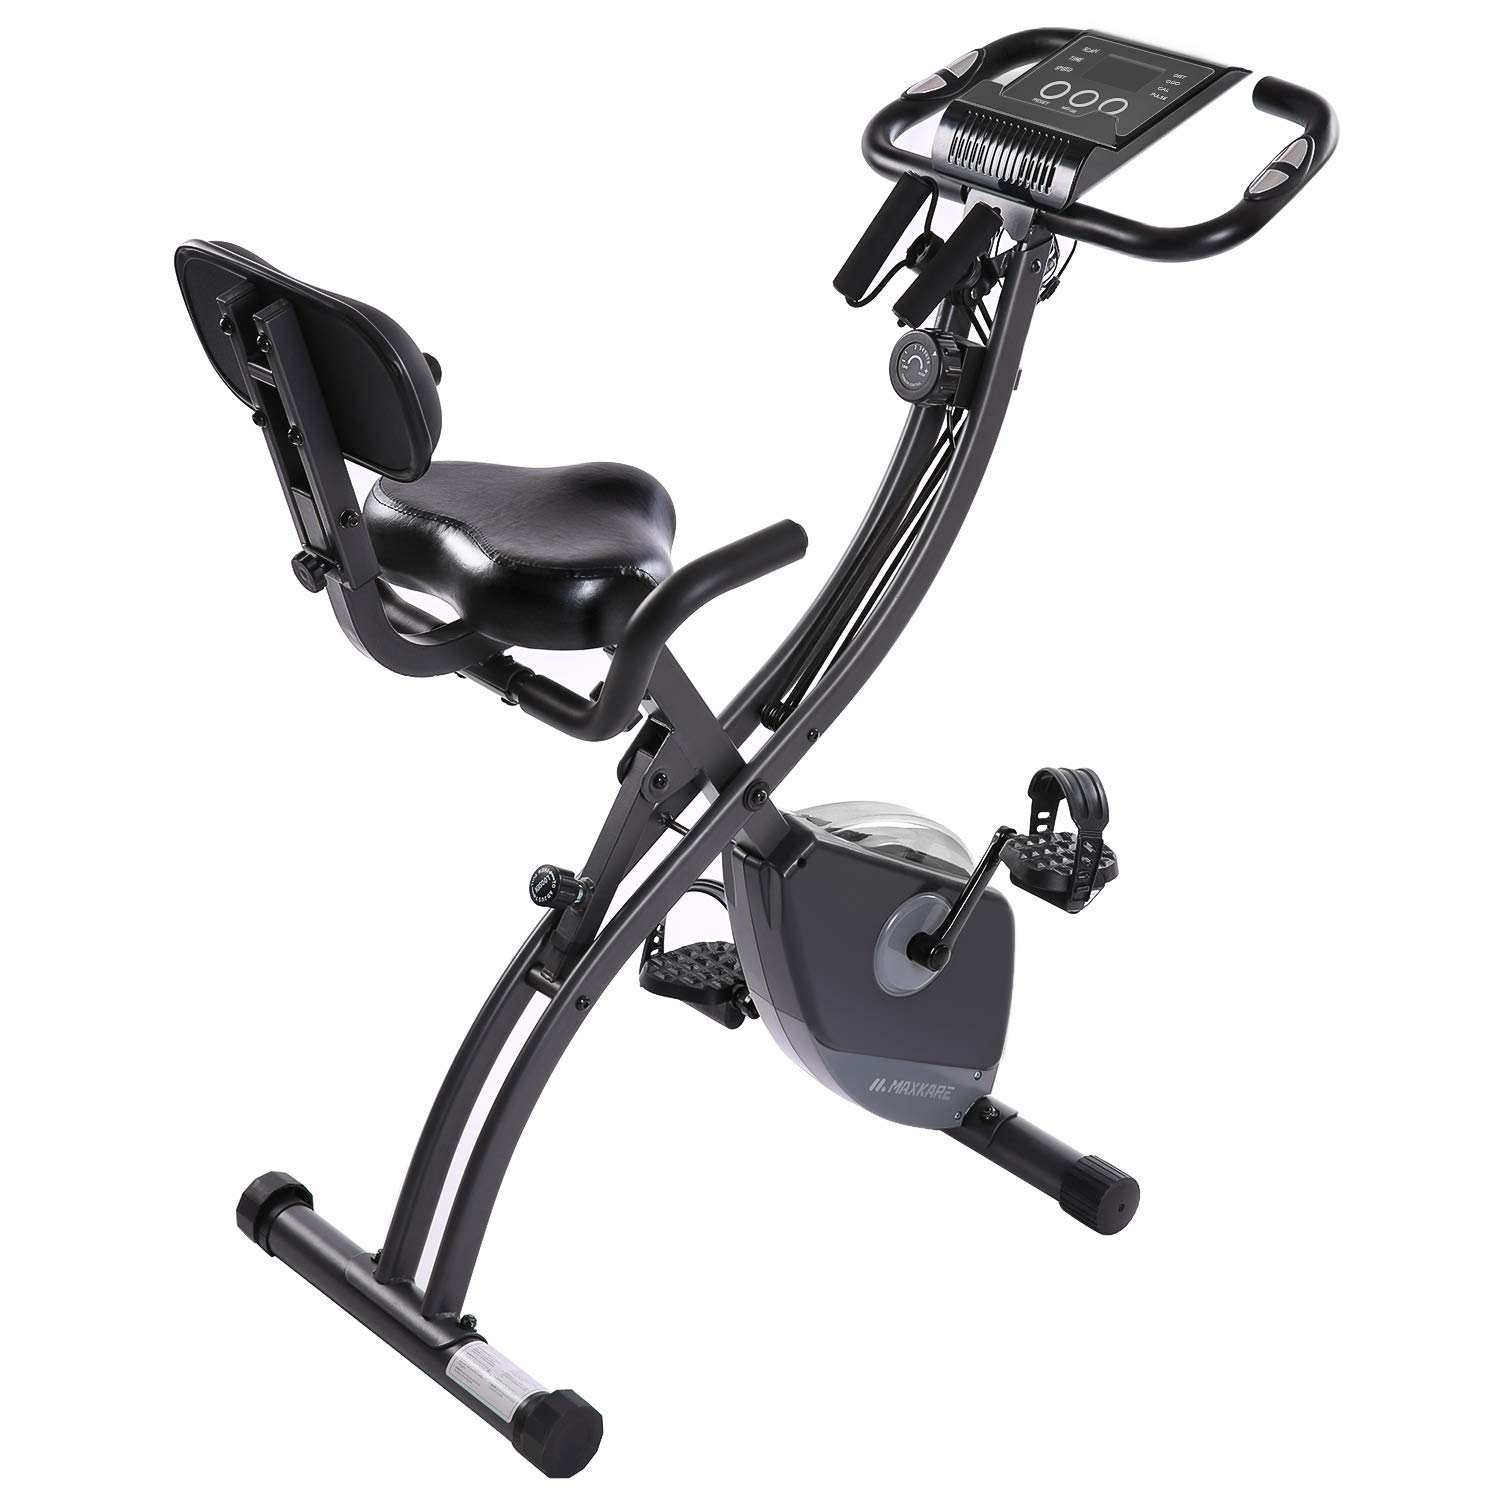 MaxKare 2 in1 Folding Magnetic Upright Exercise Bike w/Pulse, Indoor Stationary Bike with Adjustable Arm Resistance Bands and LCD Monitor by MaxKare (Image #2)